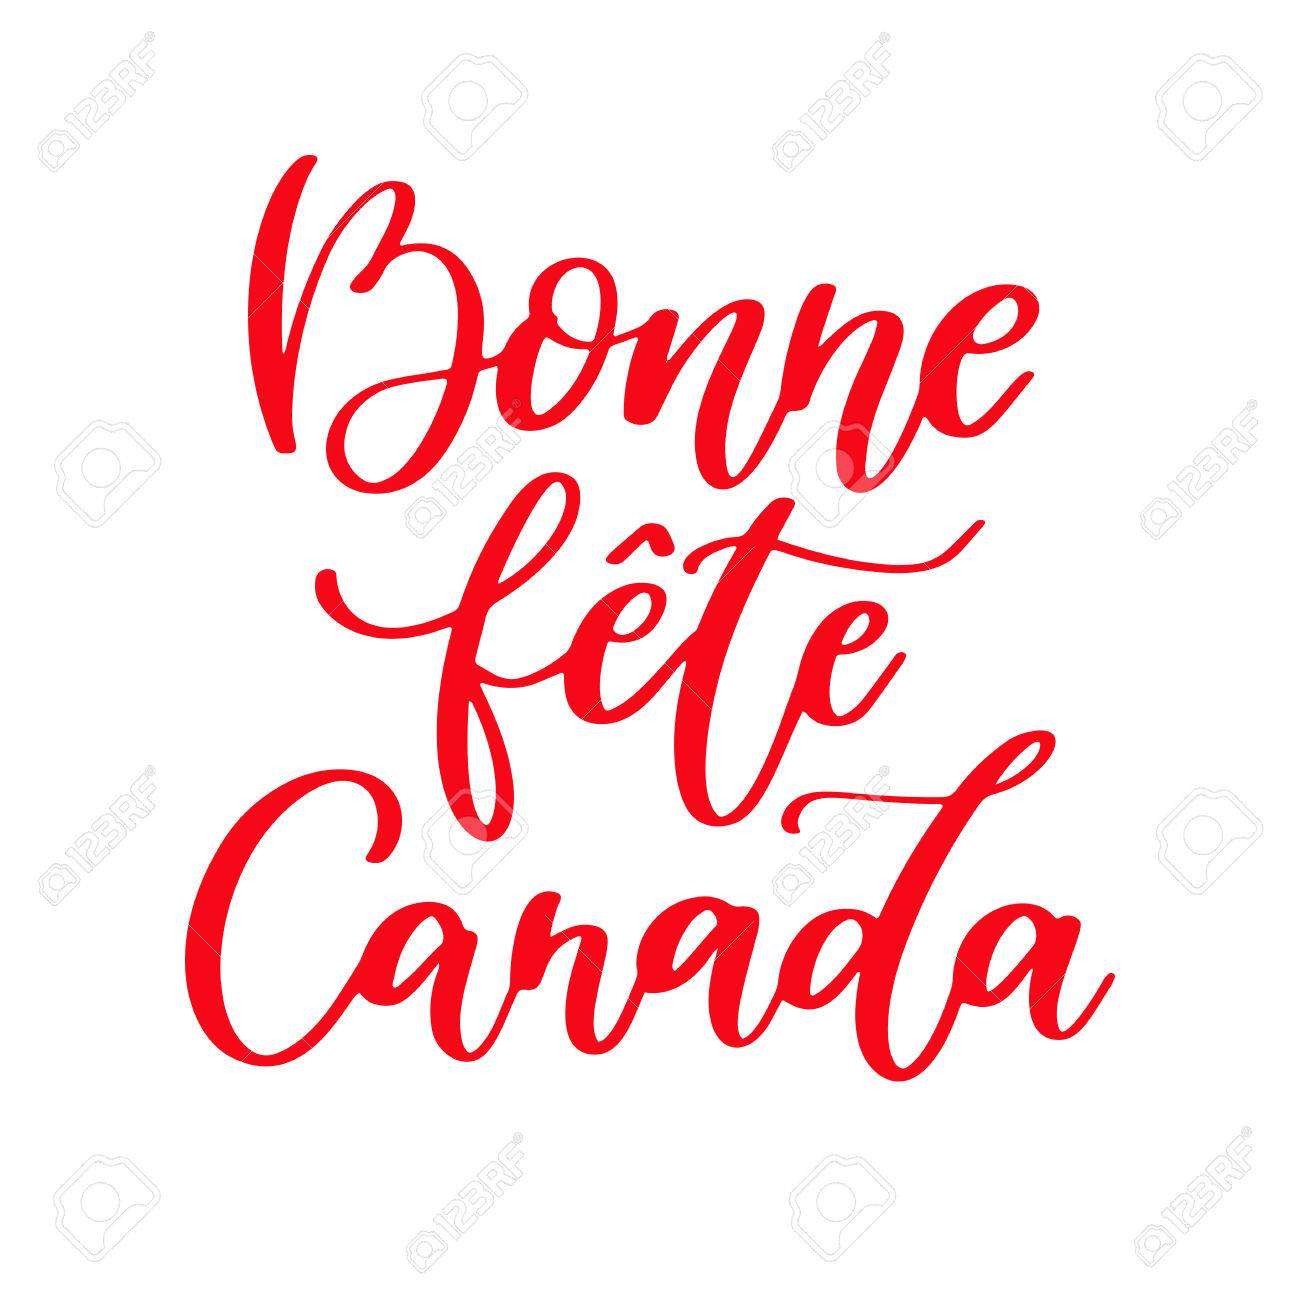 Clipart Bonne Fête happy canada day vector card in french. bonne fete canada